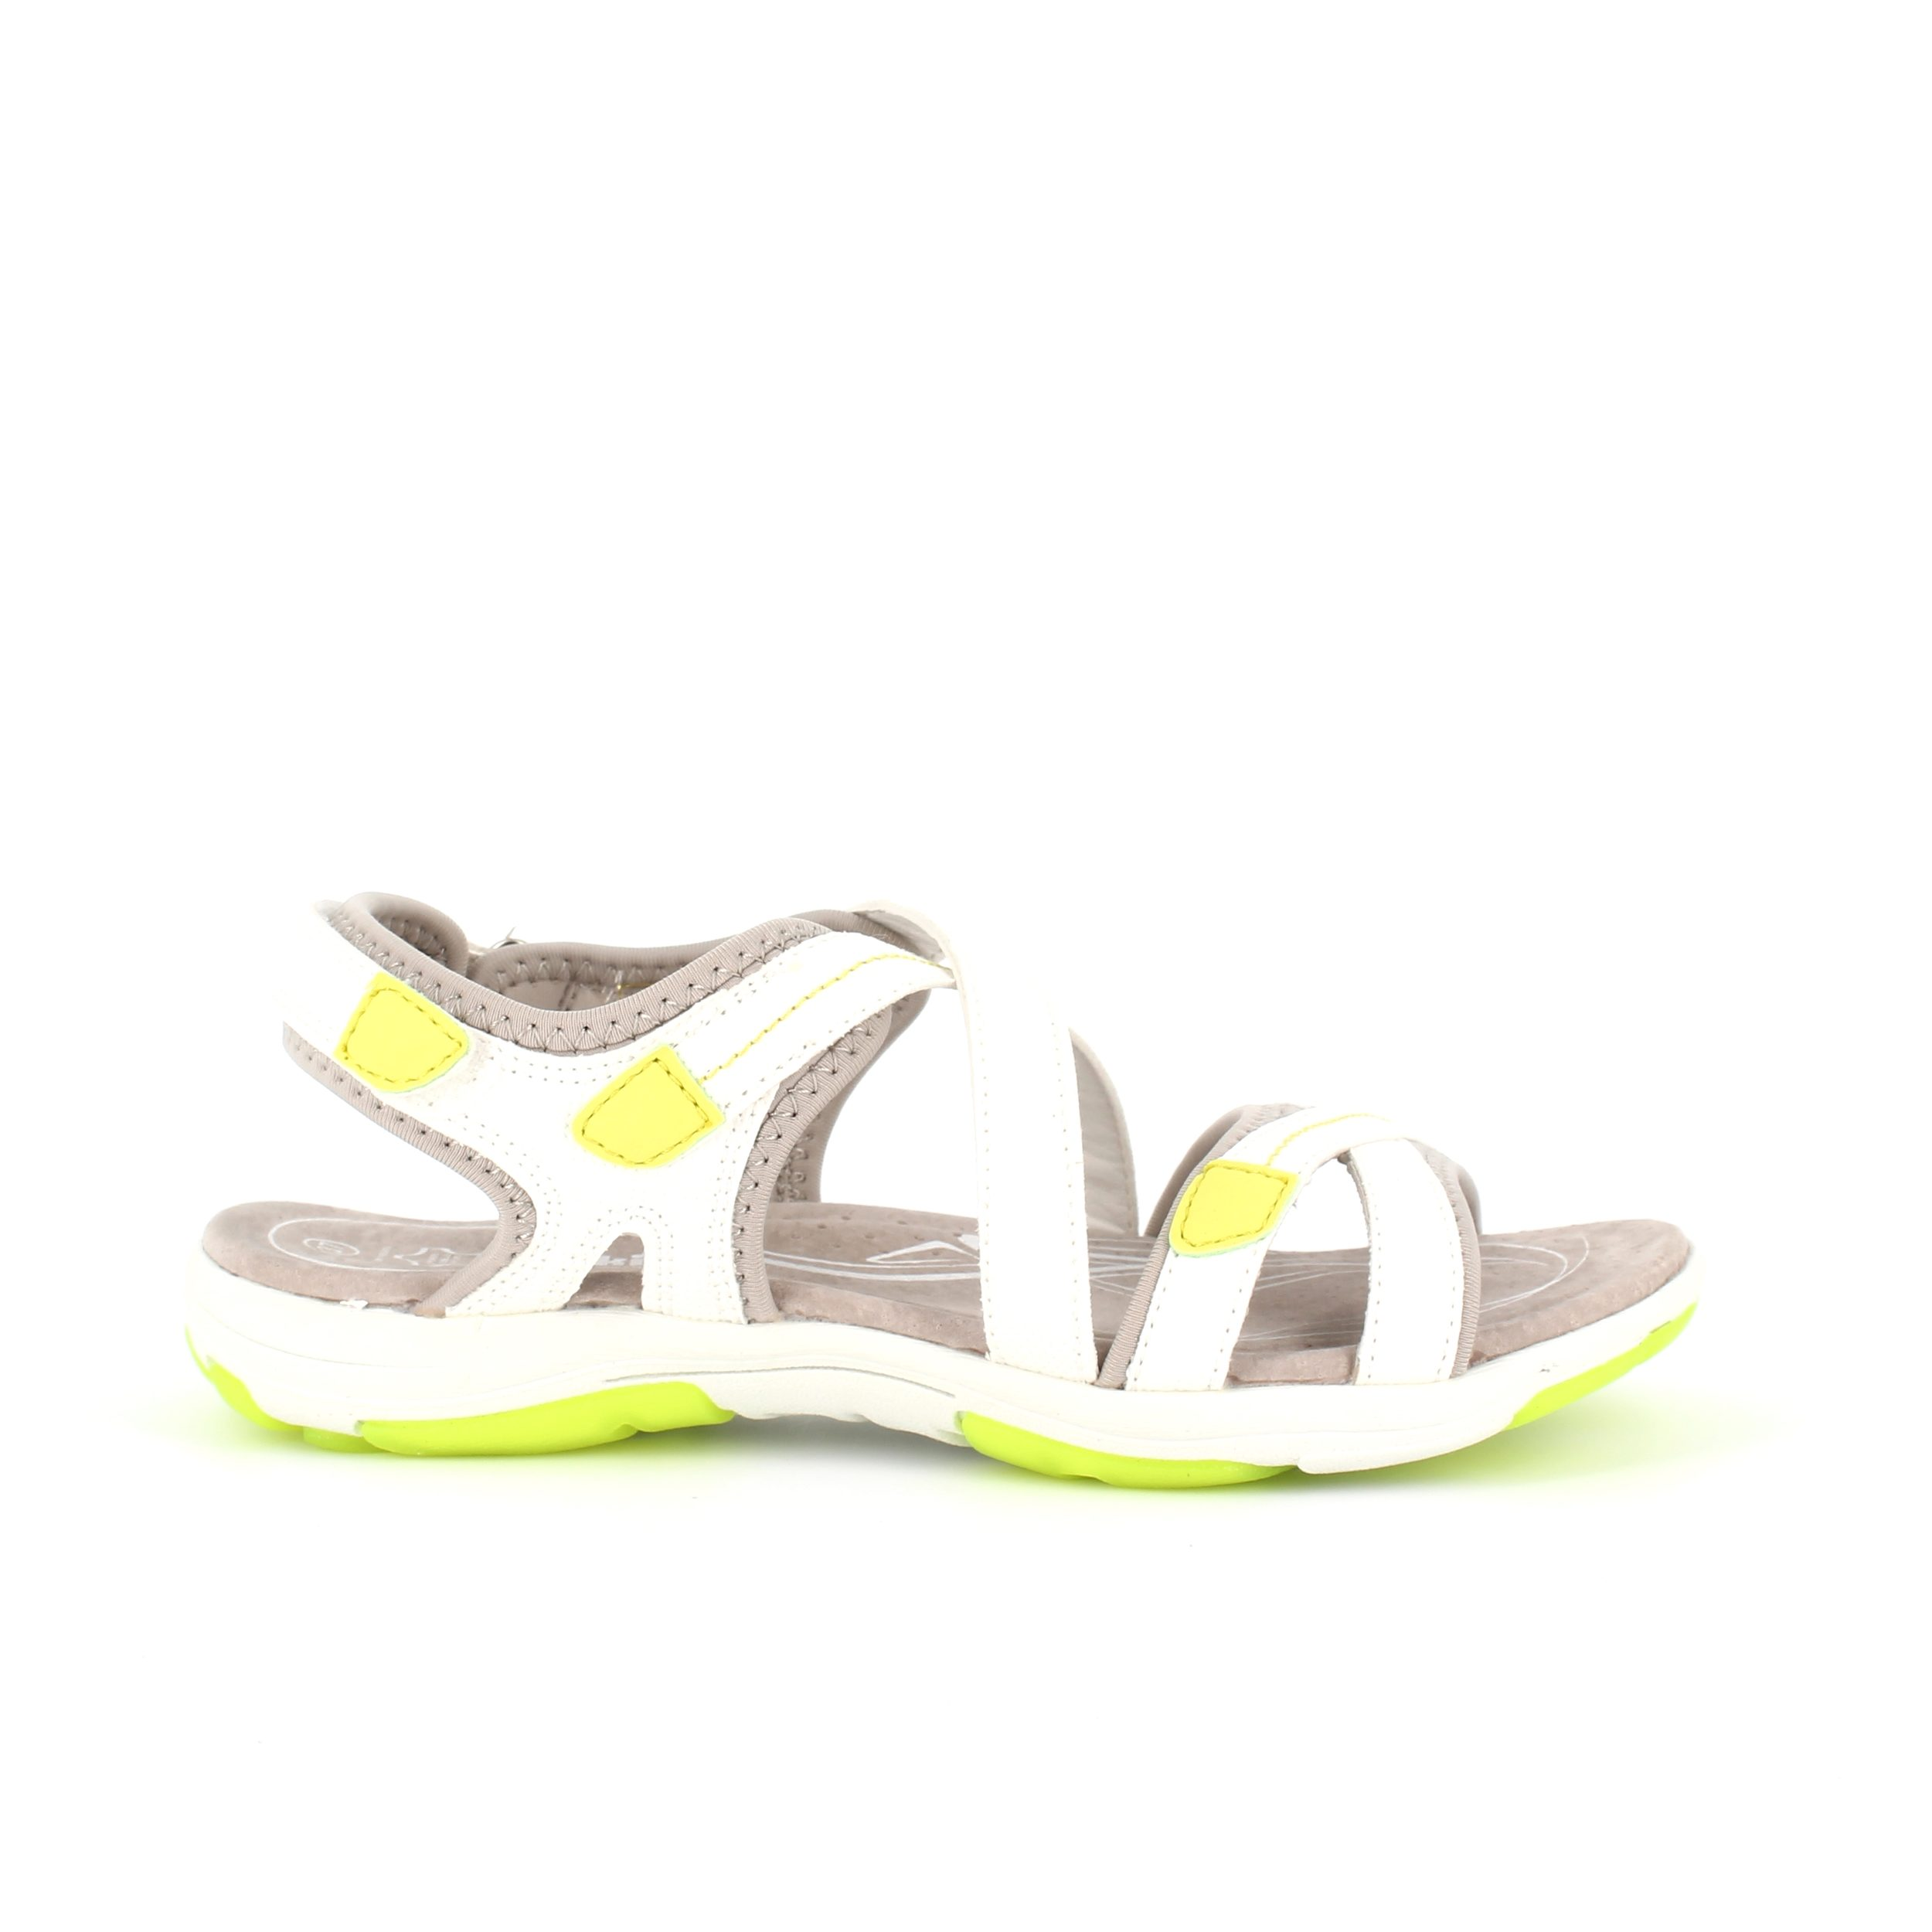 Image of   Smart sandal i frisk hvid og lime - 41